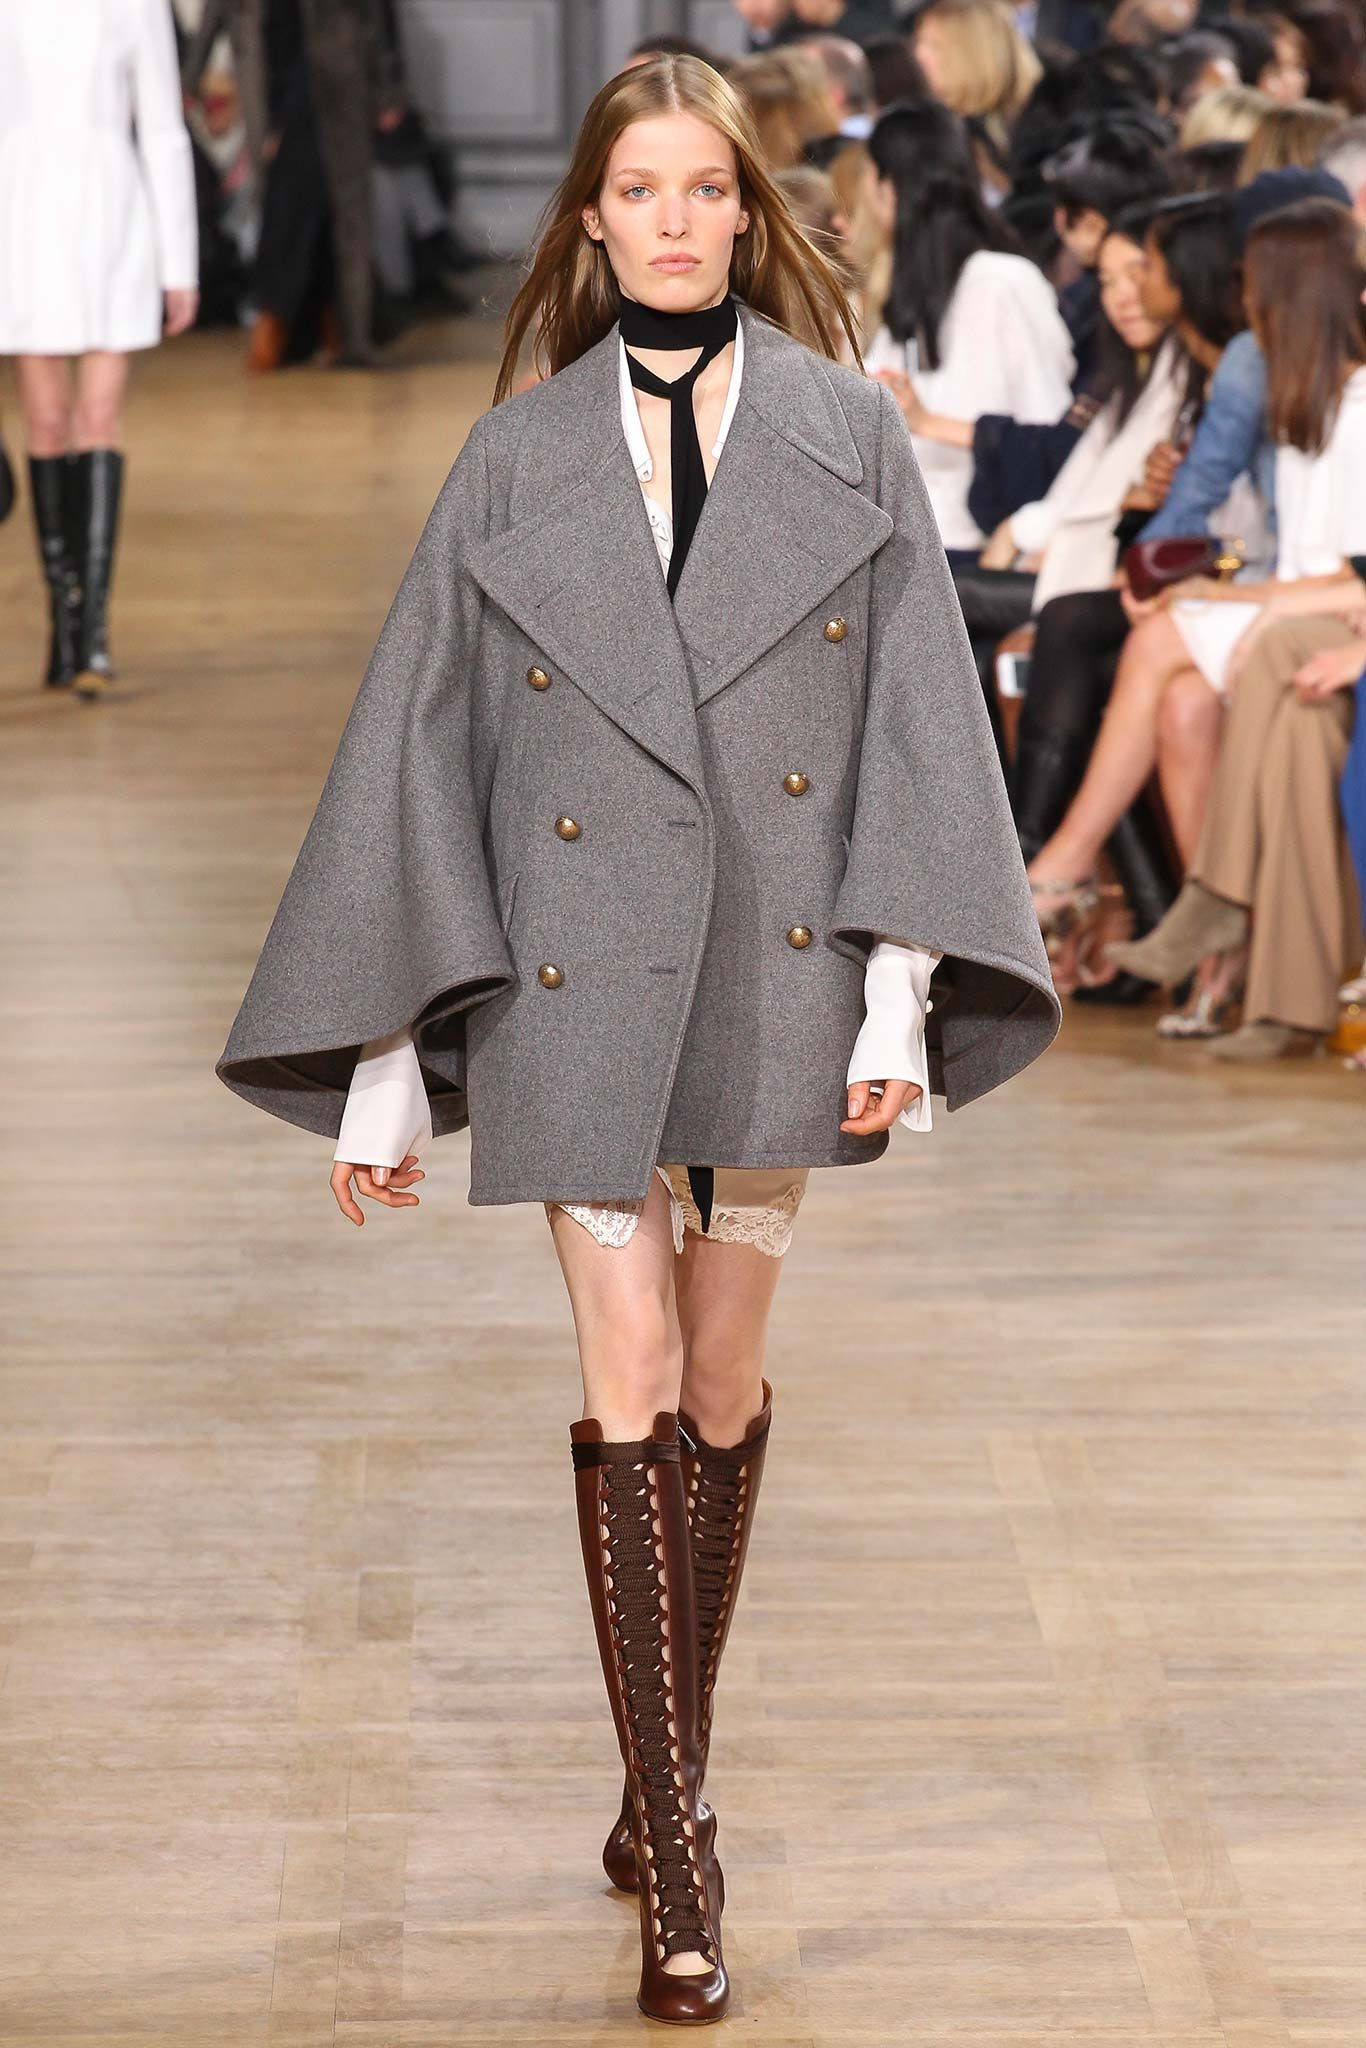 003d5802a3ab cape   boots - Chloé Fall 2015 RTW Collection - Style.com. Long live fashion   LÜR Nail presents the best designer runway looks of the Paris Autumn Winter  ...